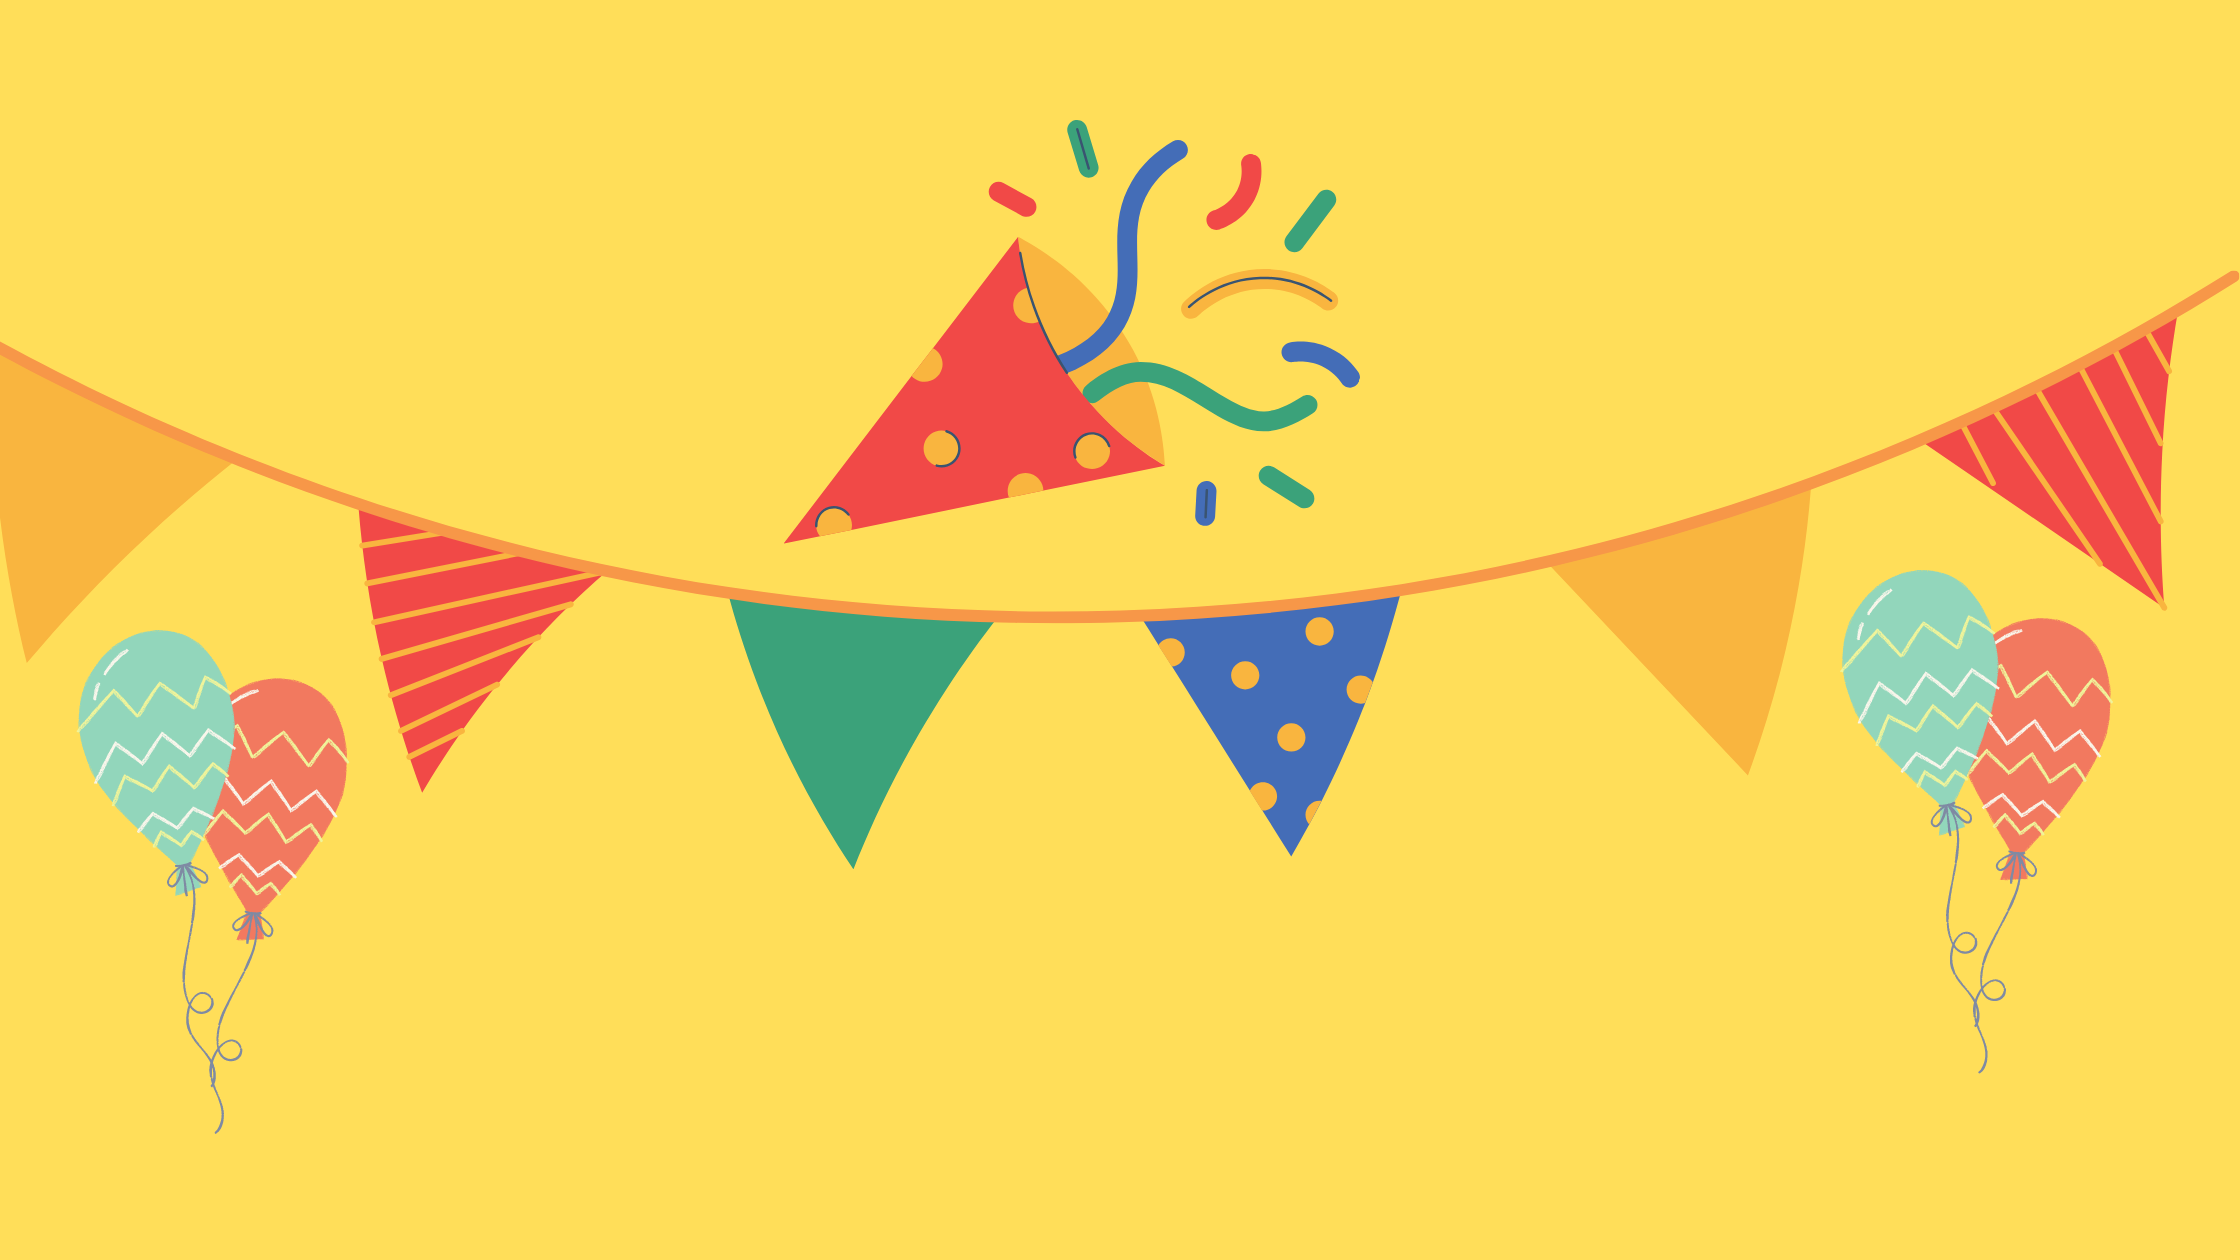 yellow background with blue, green and red festoon and balloons